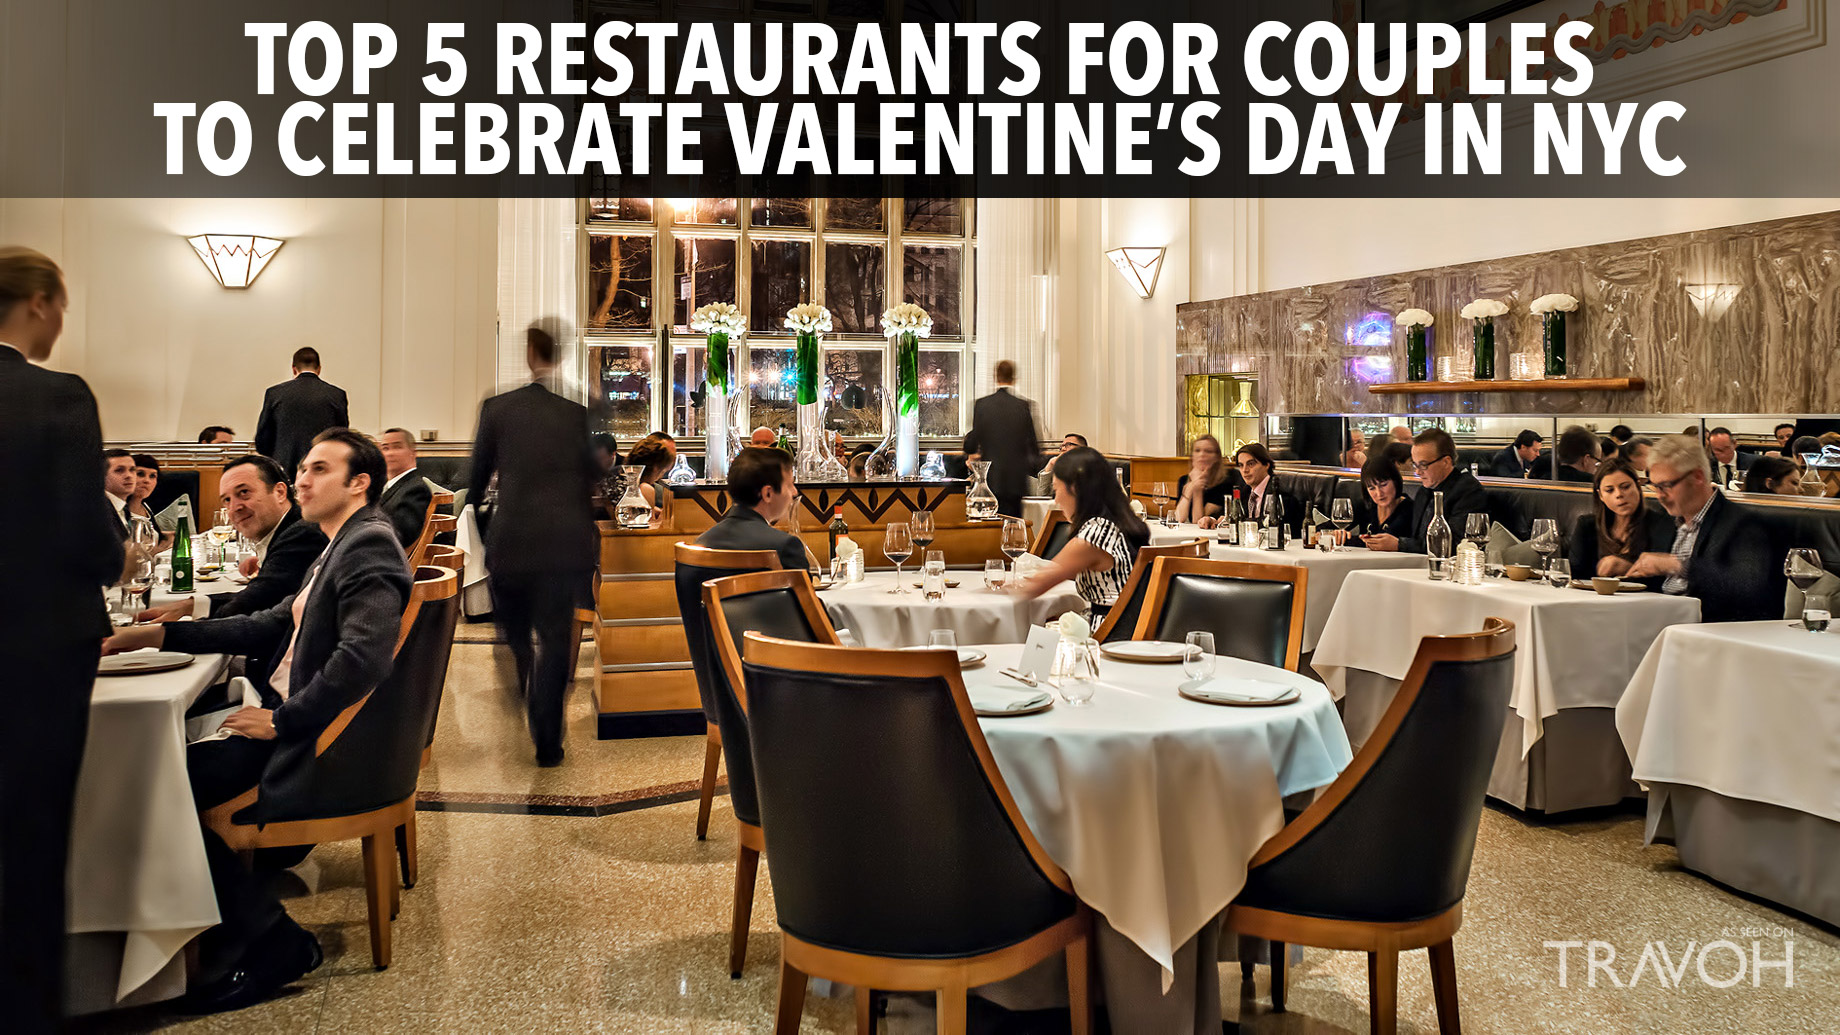 Top 5 Restaurants For S To Celebrate Valentine Day In Nyc Travoh